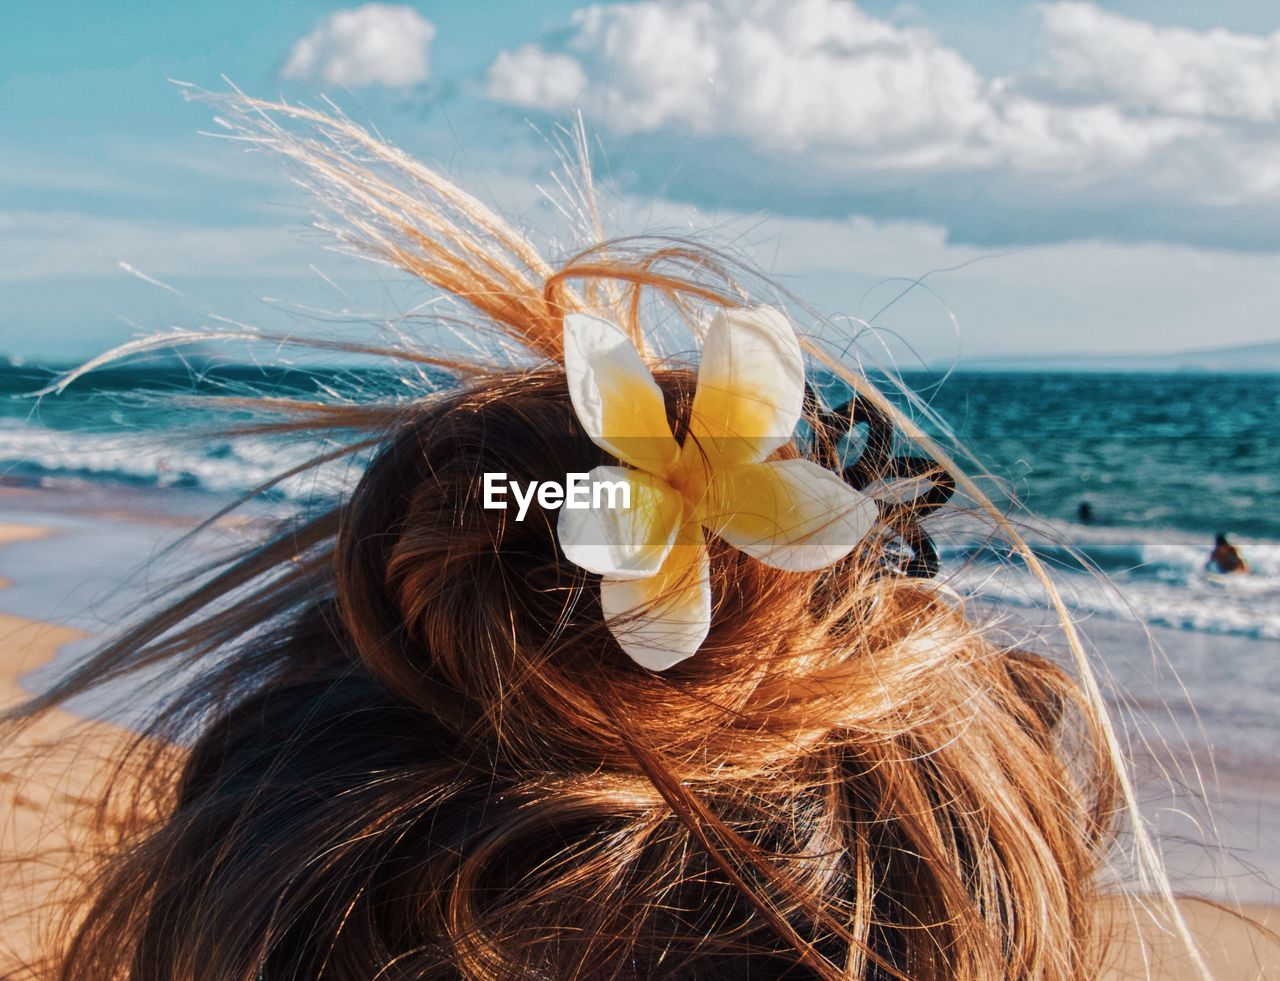 Rear view of woman wearing flower at beach against sky